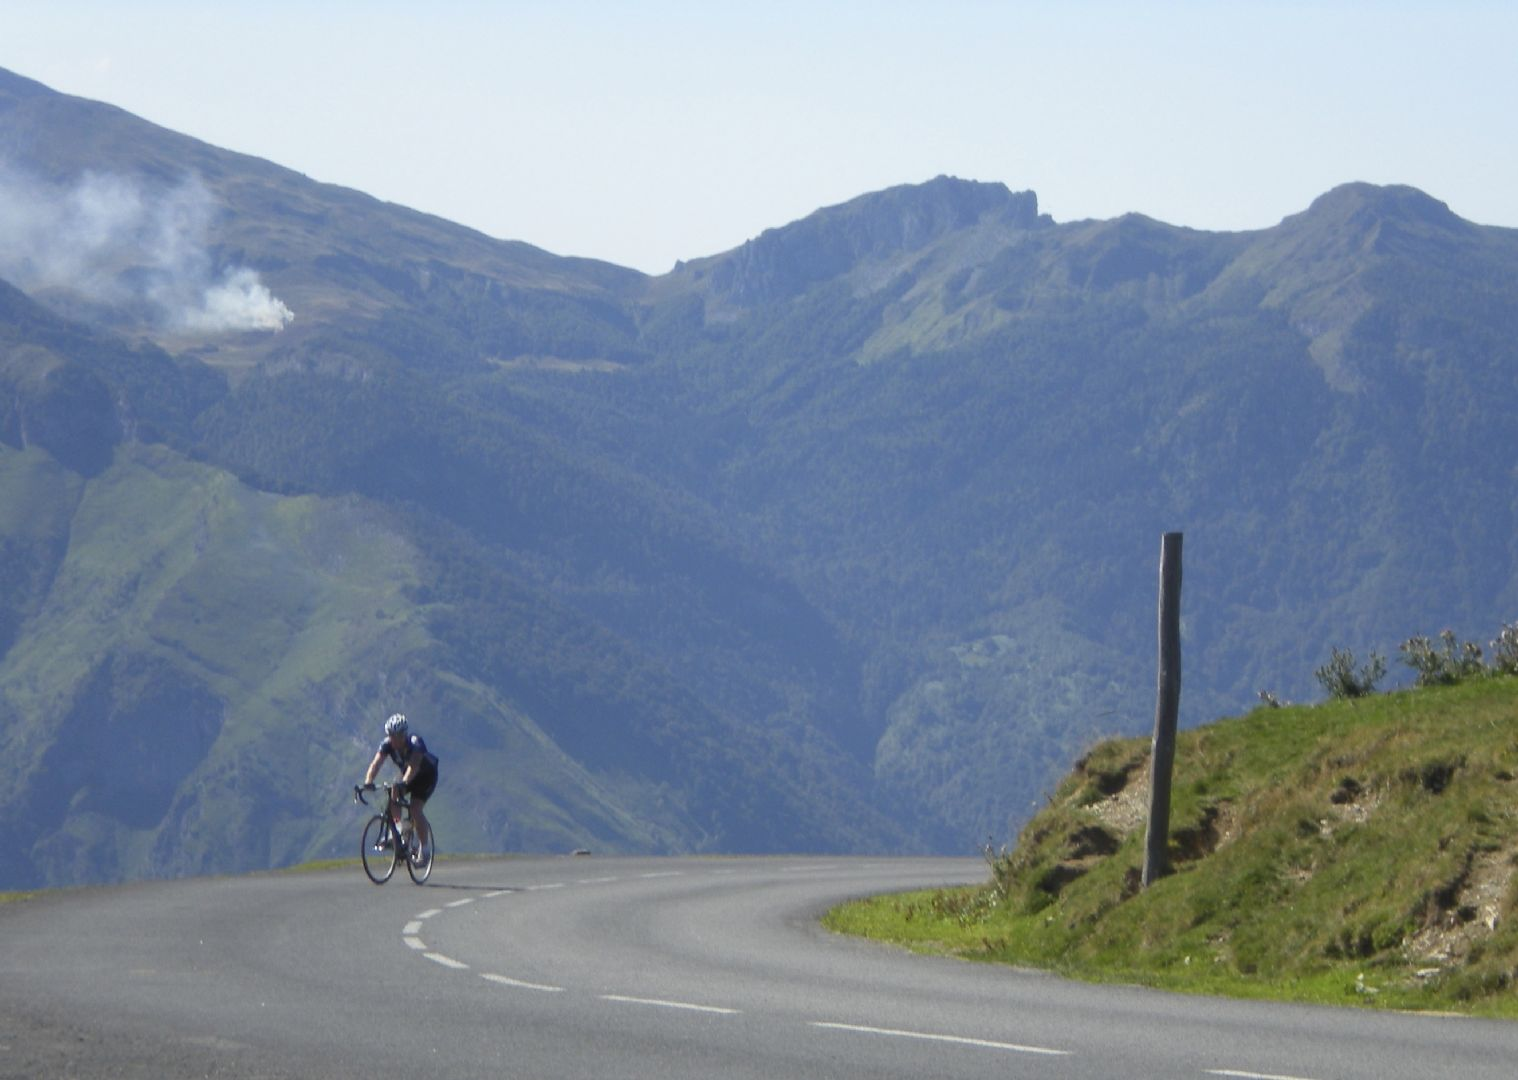 Pyrenees Classic Road Cycling 16.jpg - France - Trans Pyrenees Challenge - Guided Road Cycling Holiday - Road Cycling